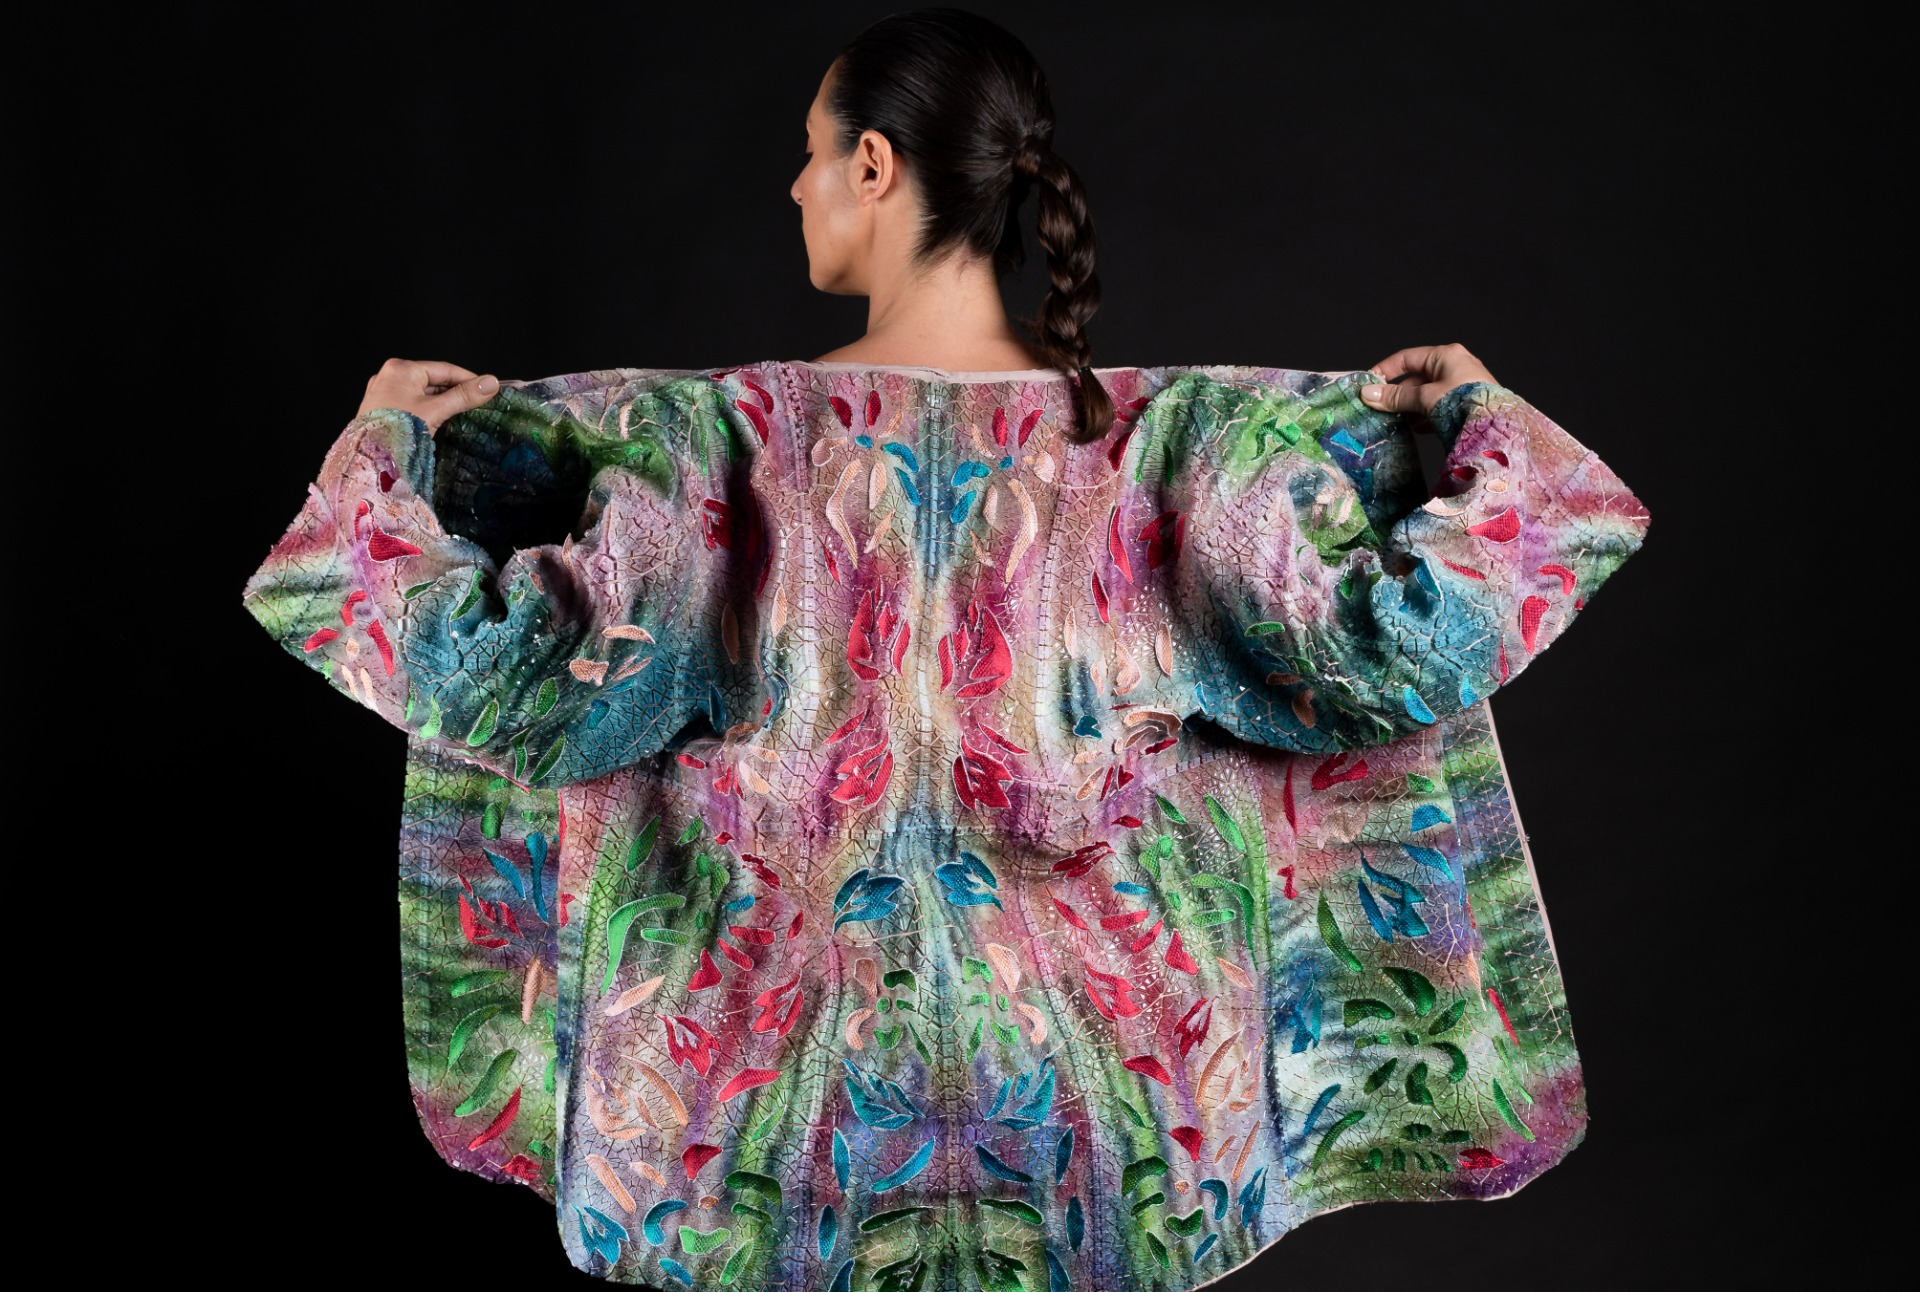 Japanese-style kimono produced by Ganit Goldstein using direct-to-textile multi-color 3D printing. Image via Stratasys.